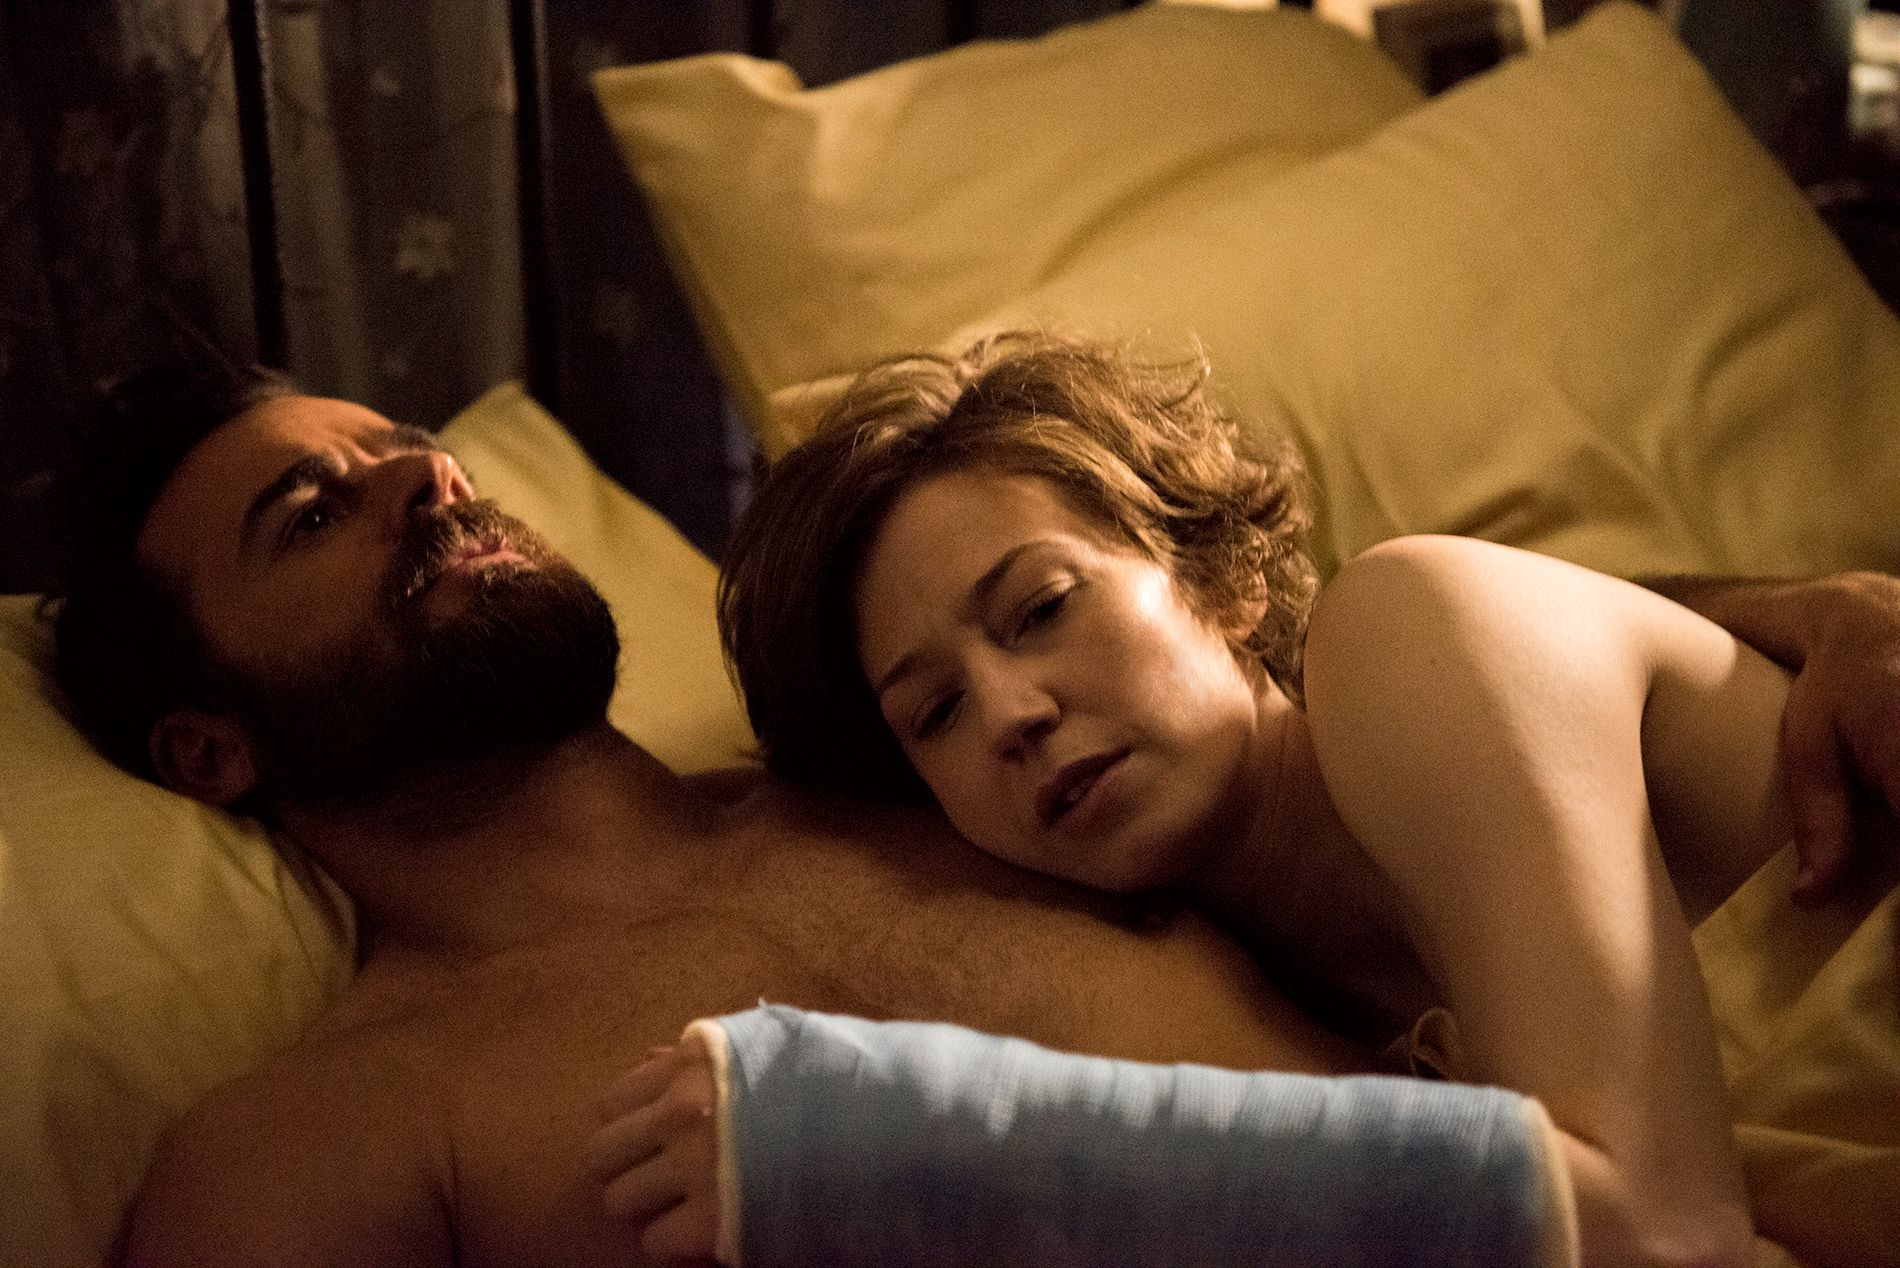 HOVEDROLLER: Justin Theroux og Carrie Coon i «The Leftovers». Foto: HBO NORDIC